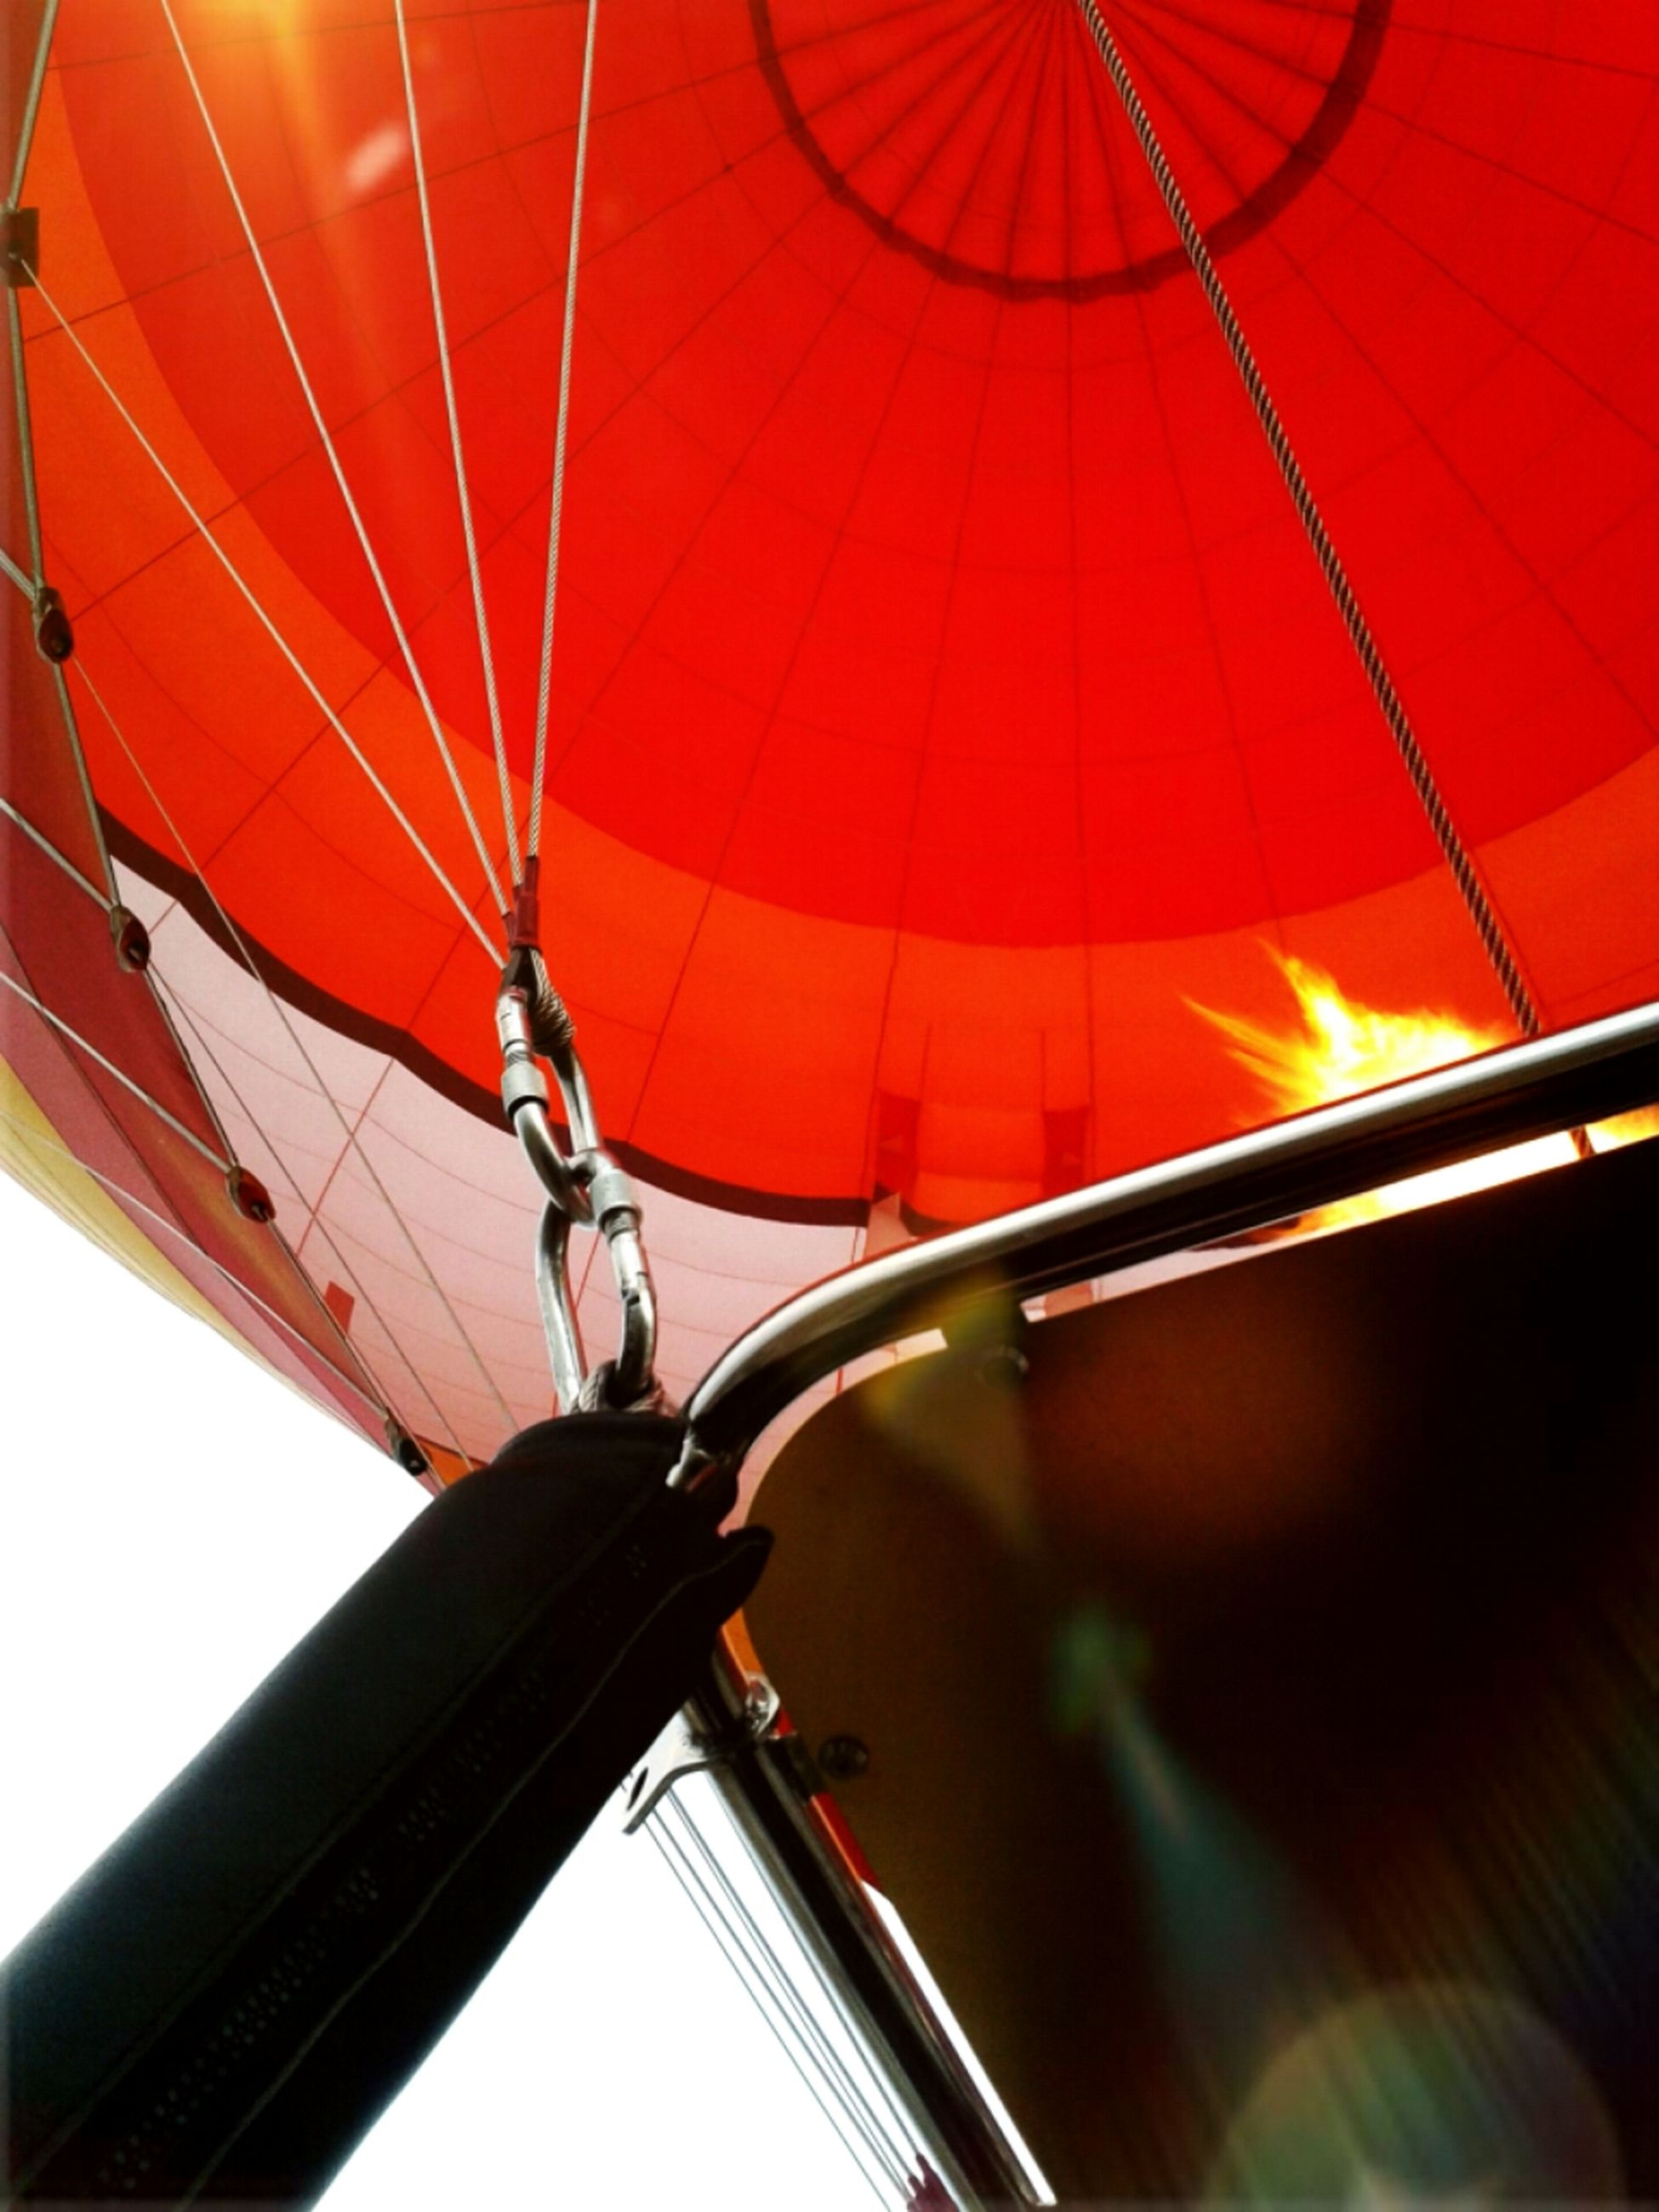 low angle view, transportation, part of, sky, red, mode of transport, cropped, motion, no people, close-up, travel, outdoors, sunset, lighting equipment, metal, orange color, day, mid-air, silhouette, built structure